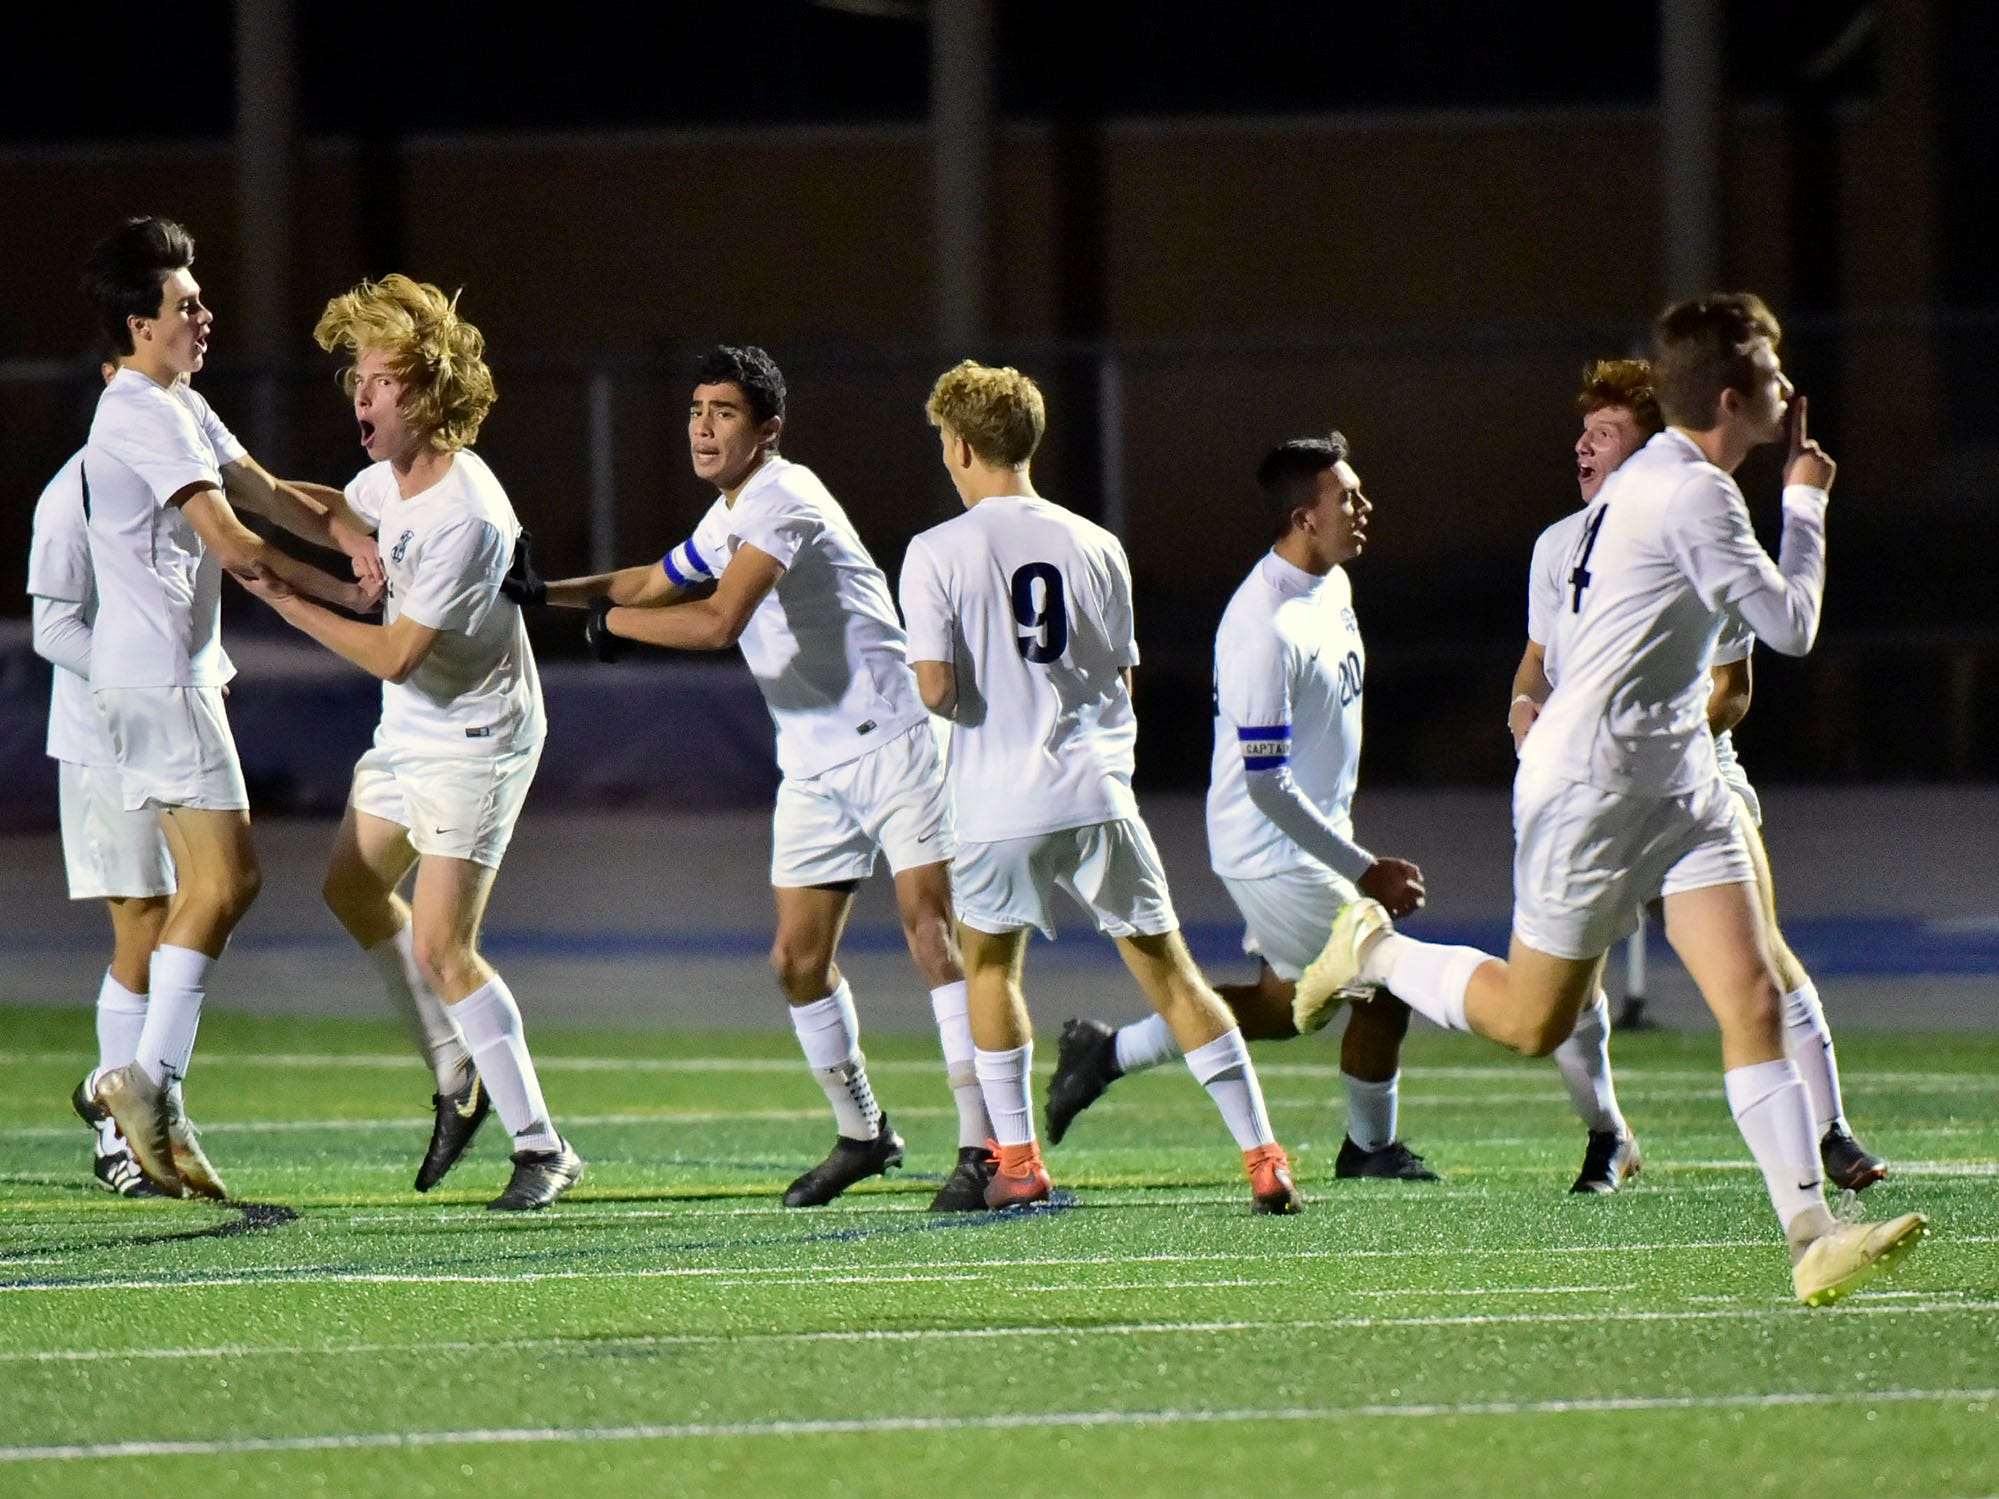 Dallastown teammates celebrate a score. Chambersburg lost a first round D3 soccer match to Dallastown 2-1 on Tuesday, Oct. 23, 2018.